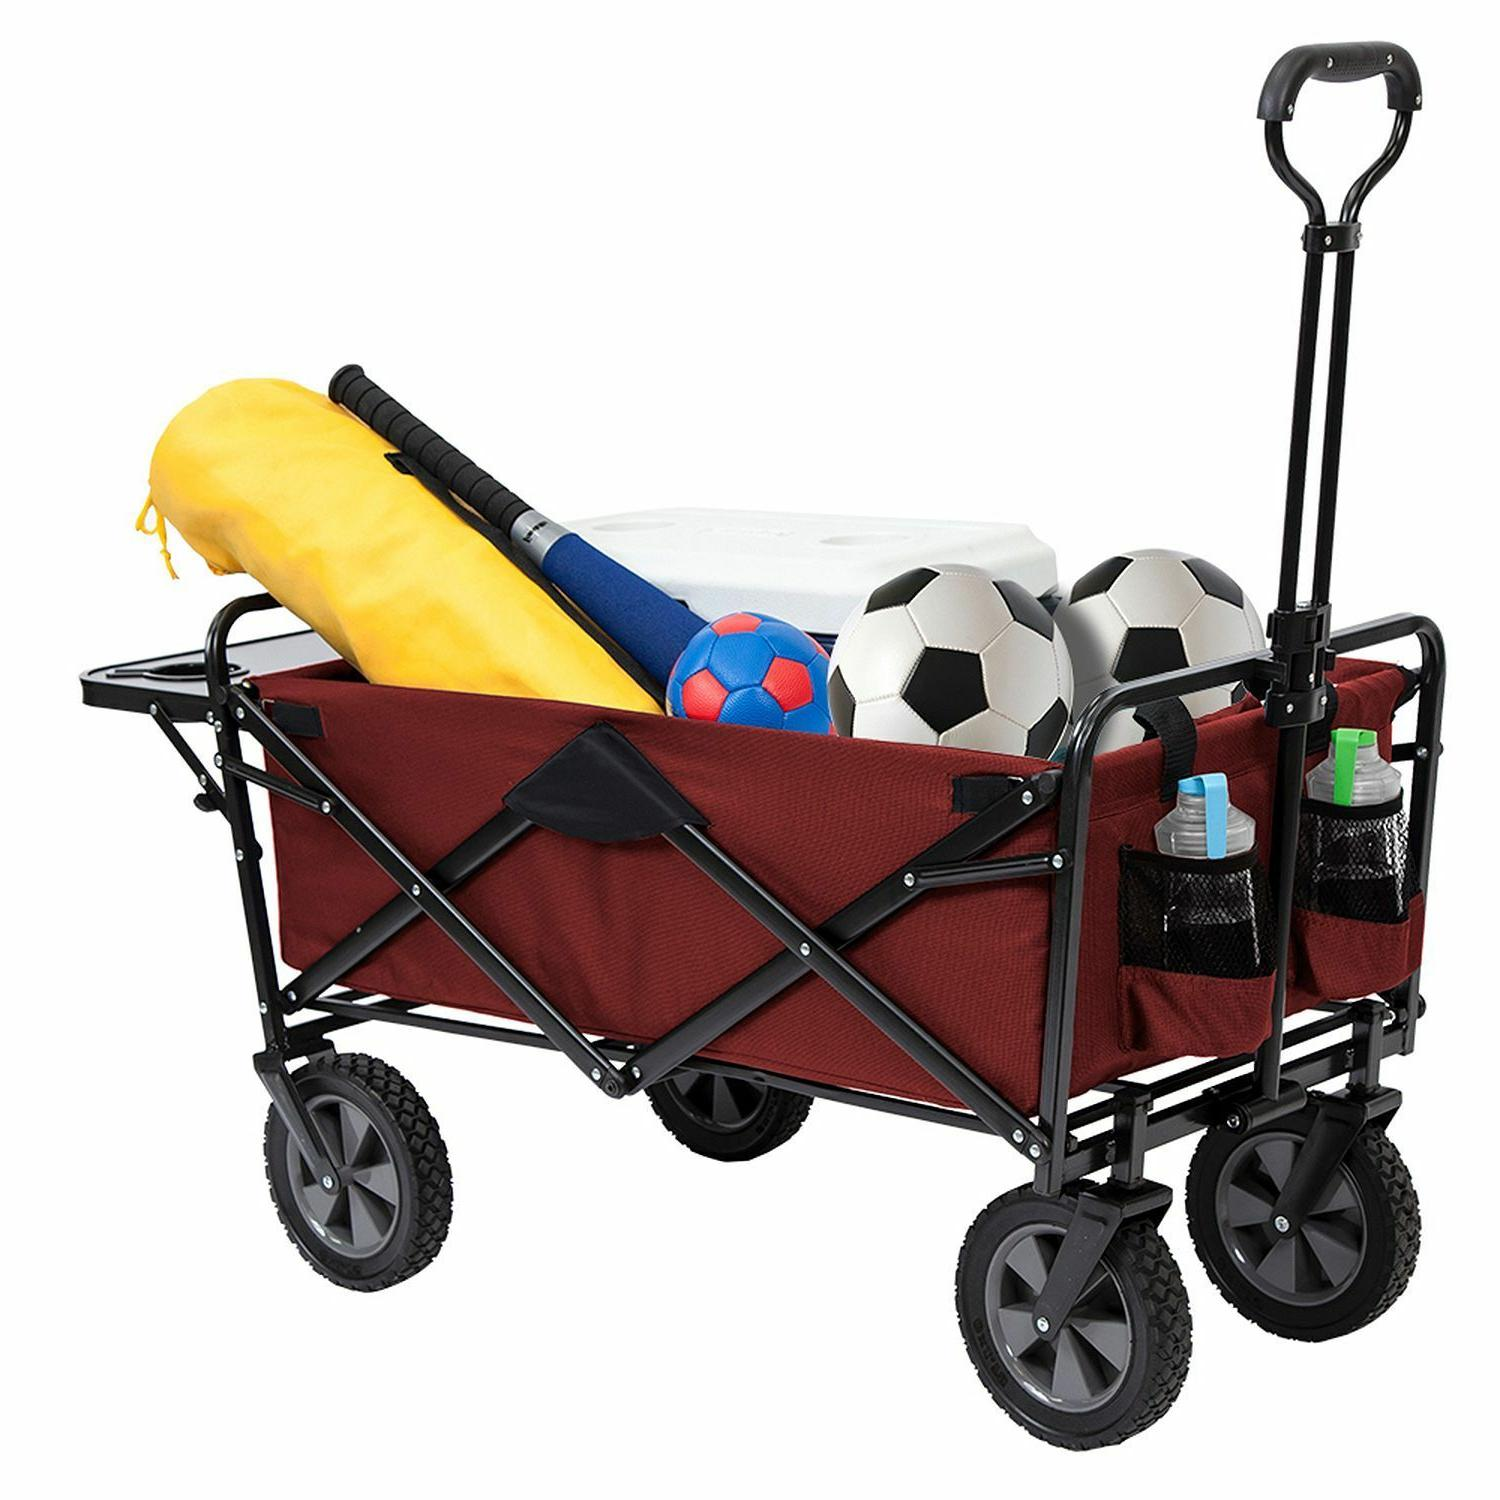 Collapsible Wagon Cart Camping Garden Steel Frame assorted colors